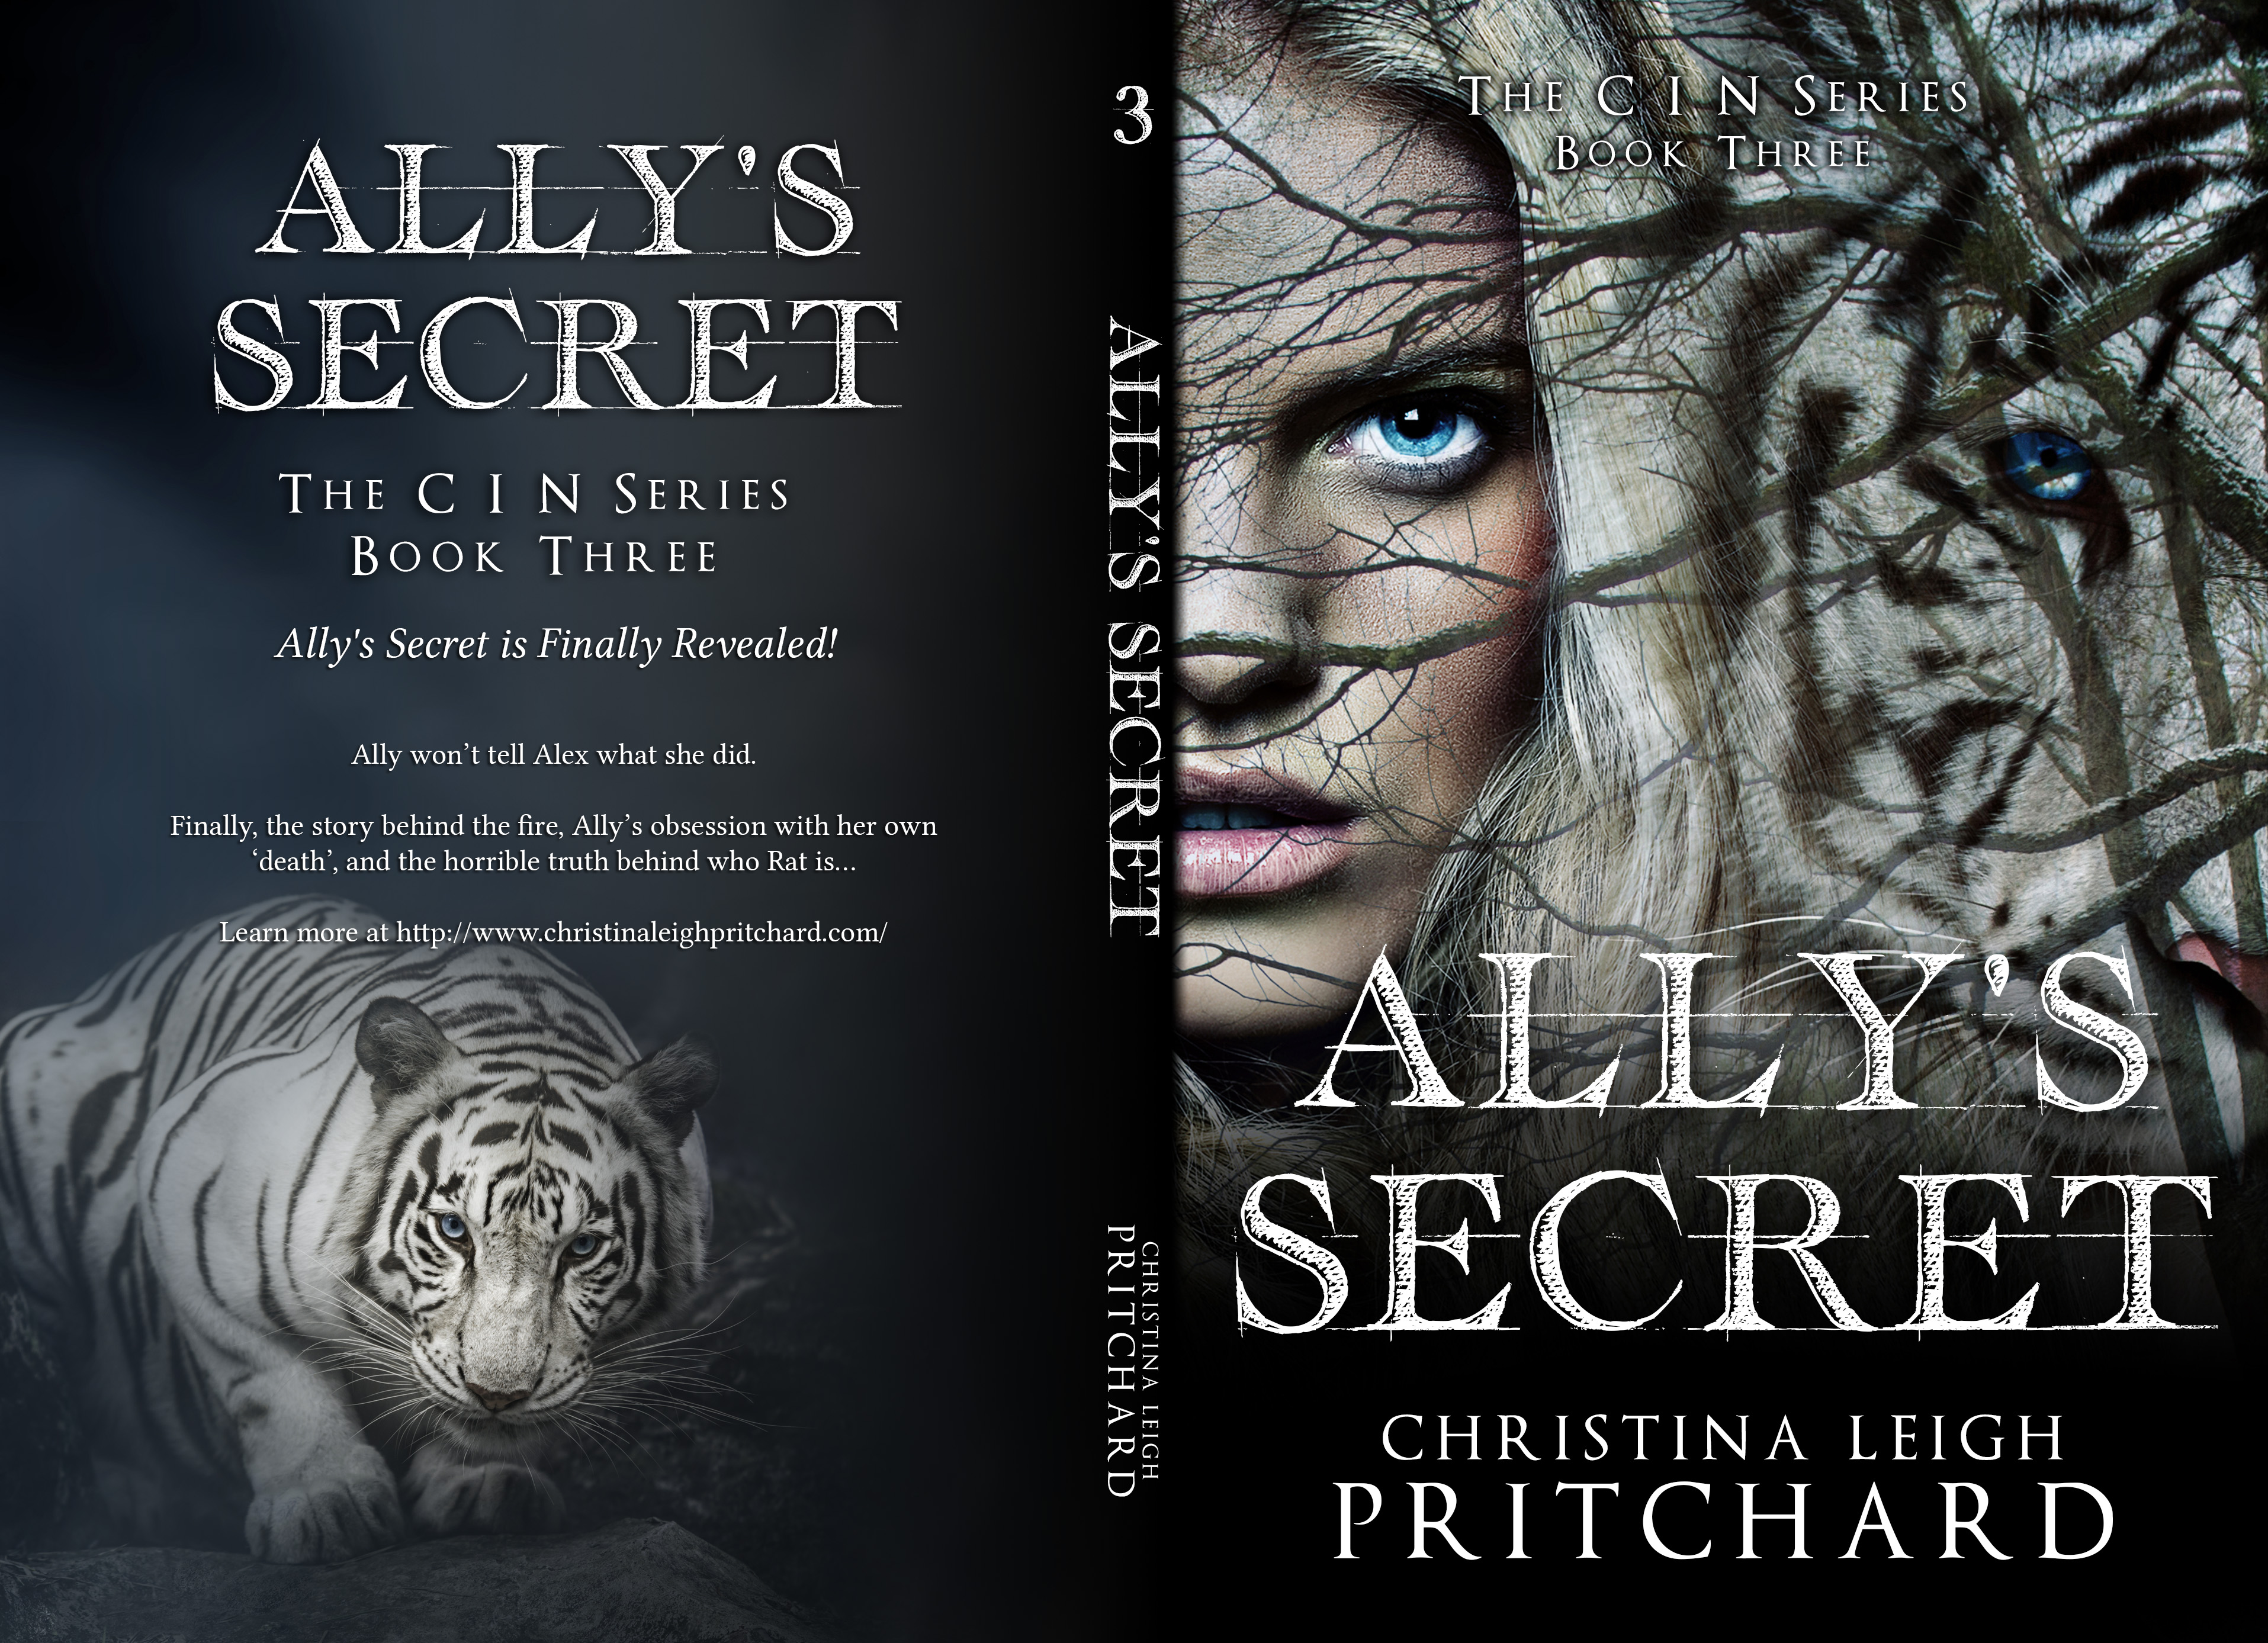 allys_secret bk cover